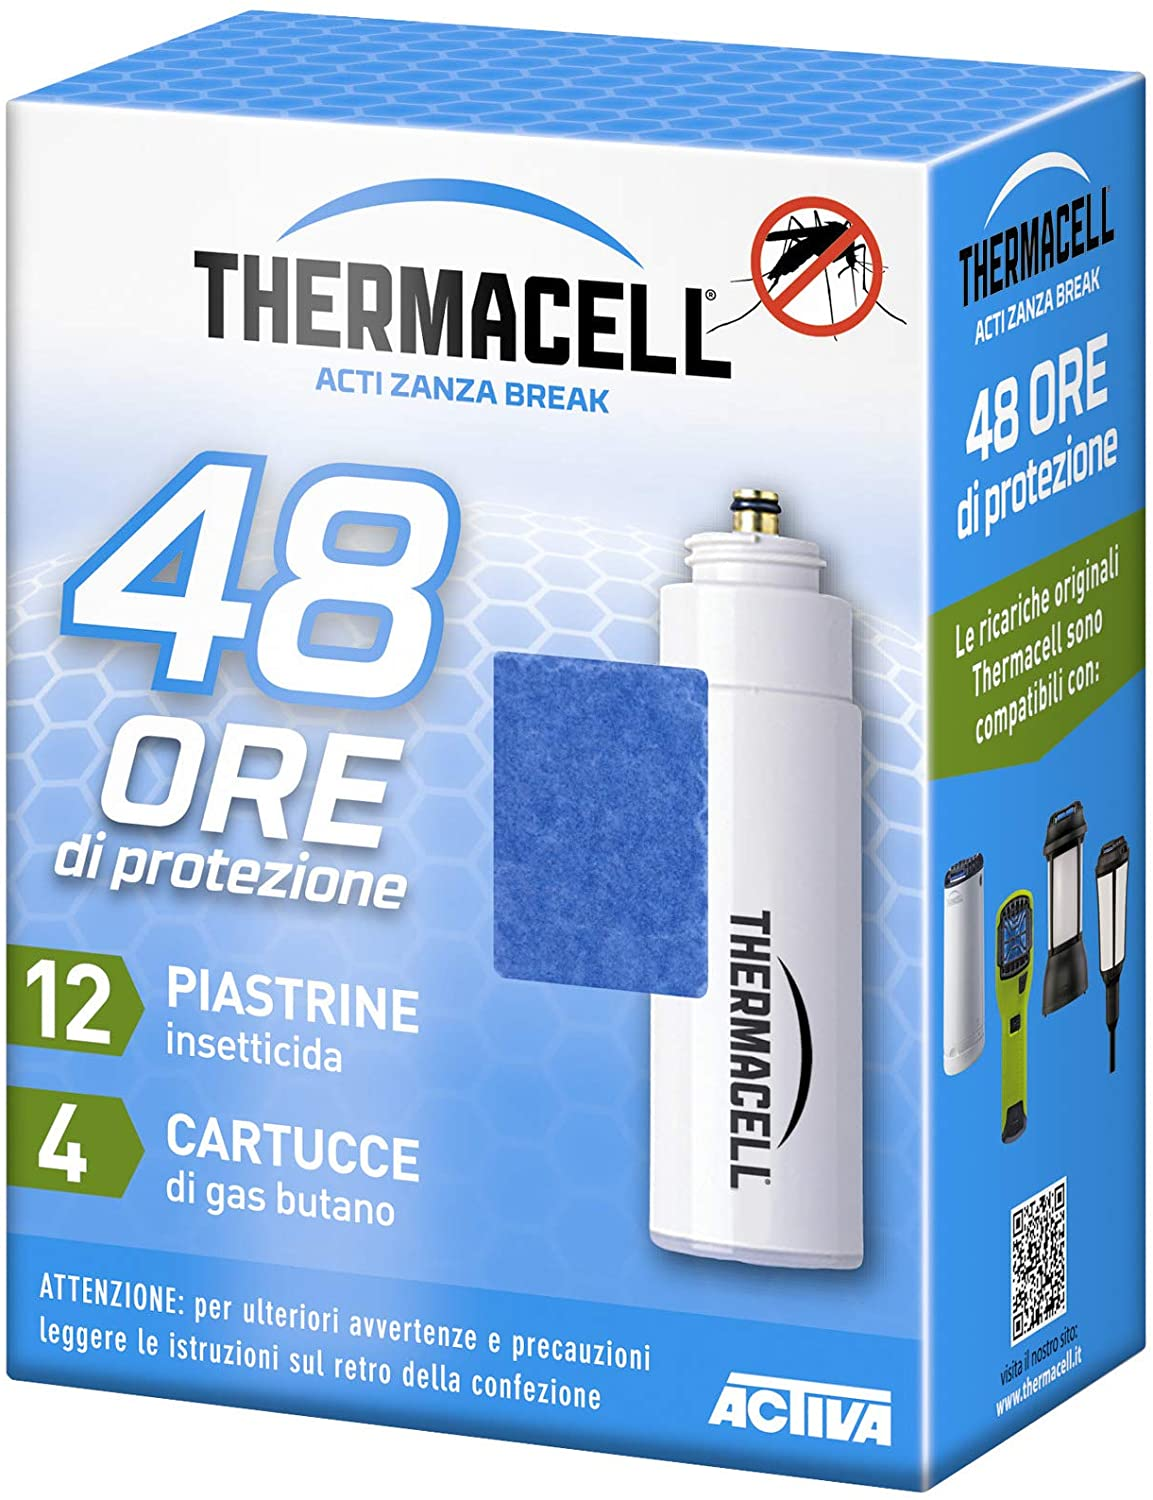 THERMACELL RICARICA 48 ORE Image